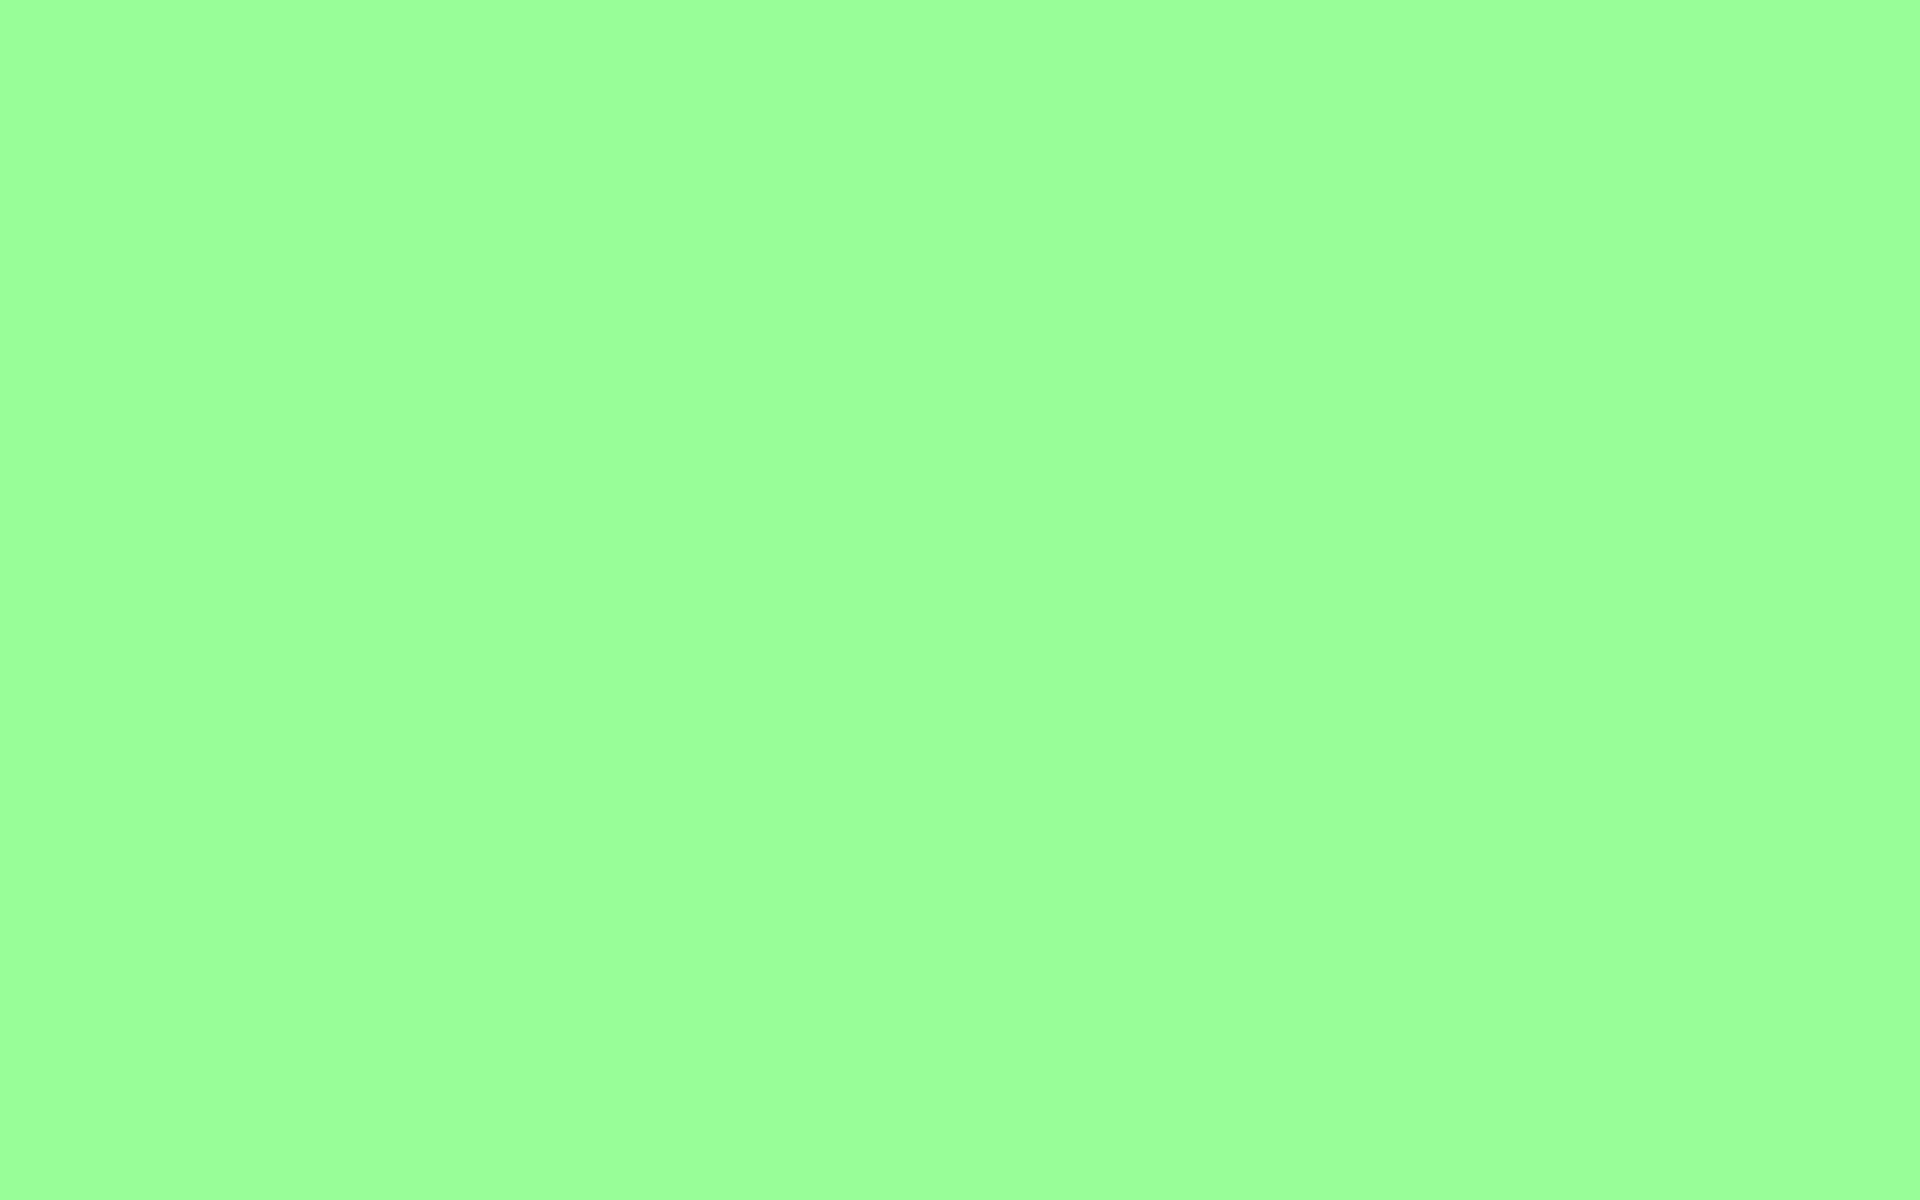 Solid Mint Green Background 1920x1200 mint green solid 1920x1200